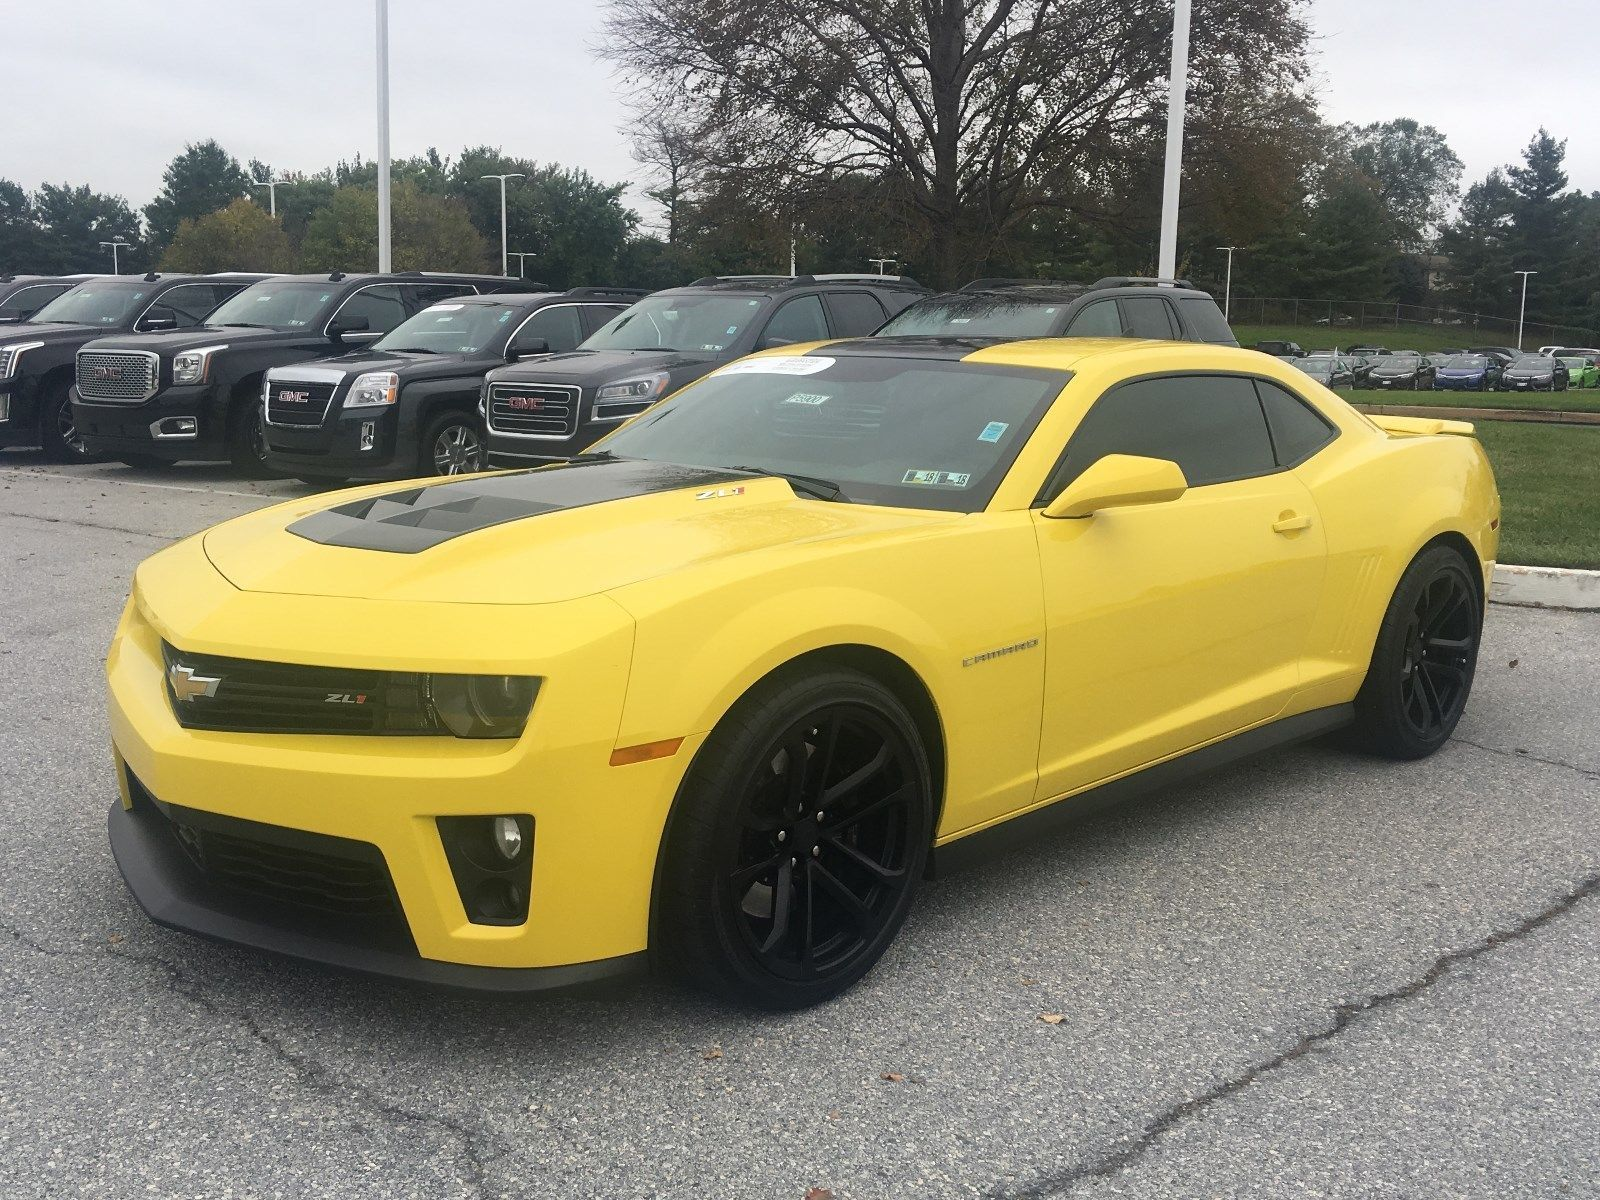 2015 Chevrolet Camaro Zl1 Bright Yellow Chevy Camaro Zl1 6 2 Super Charged V8 Auto Trans Gm Certified 2017 2018